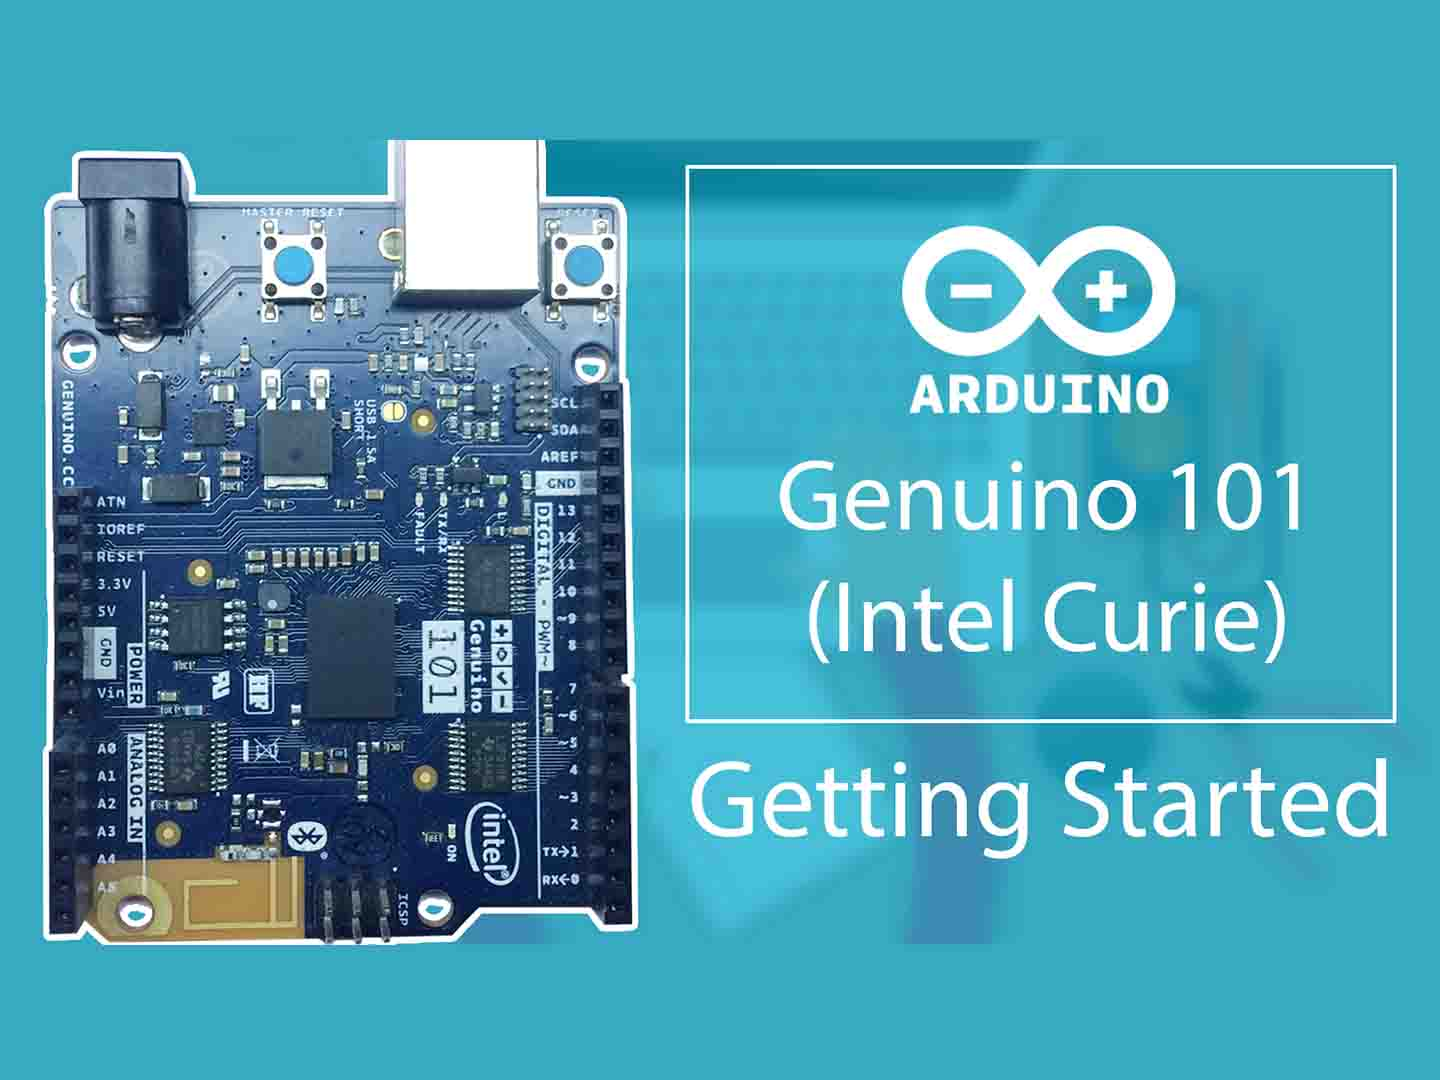 Arduino Genuino 101 / Intel Curie Getting Started